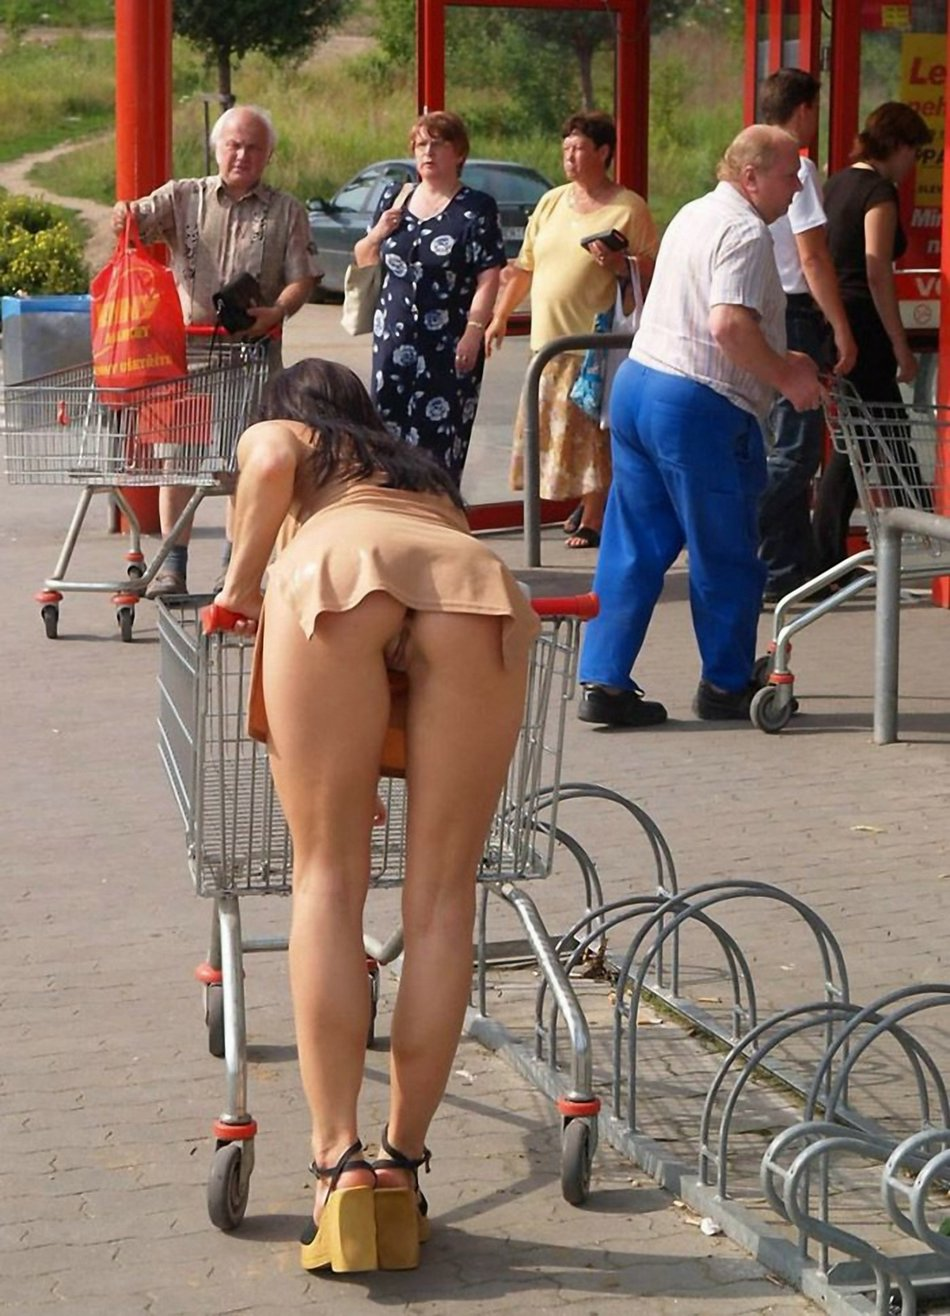 Fucking wifes hot ass in public Showing Off Wife Public Best Porn Images Hot Sex Pics And Free Xxx Photos On Www Commonporn Com